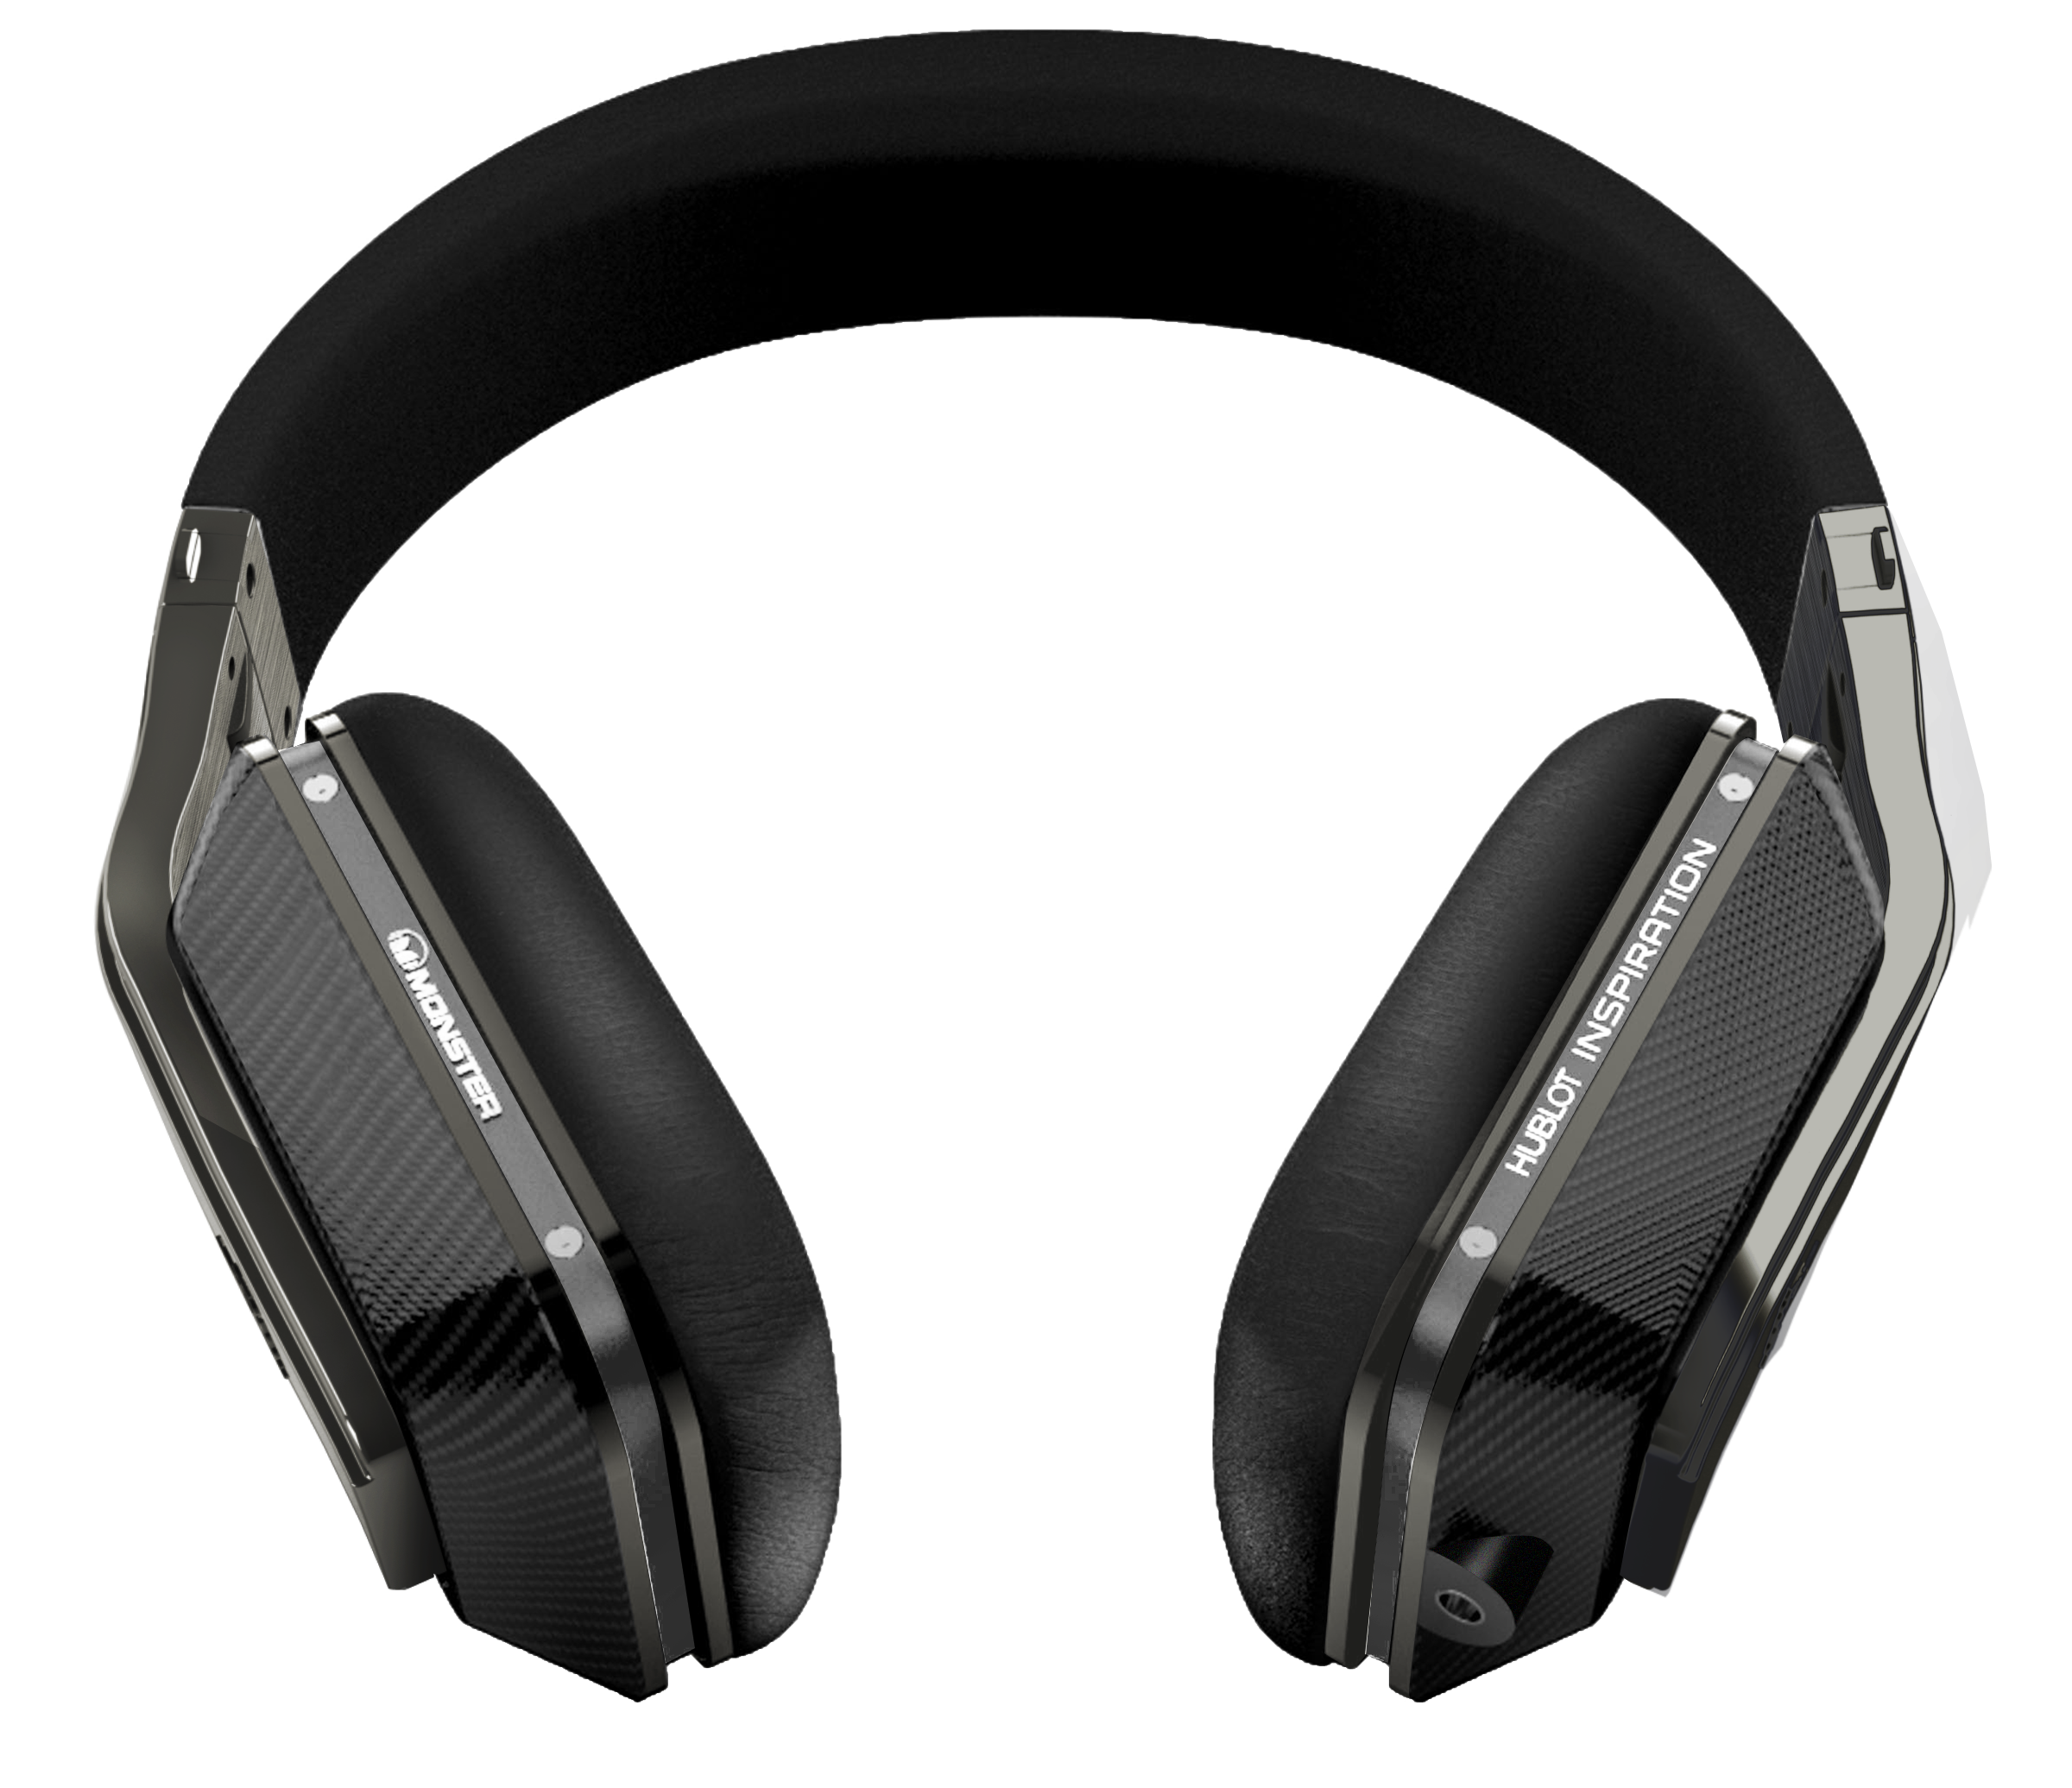 Download Music Headphone Png Image For Free